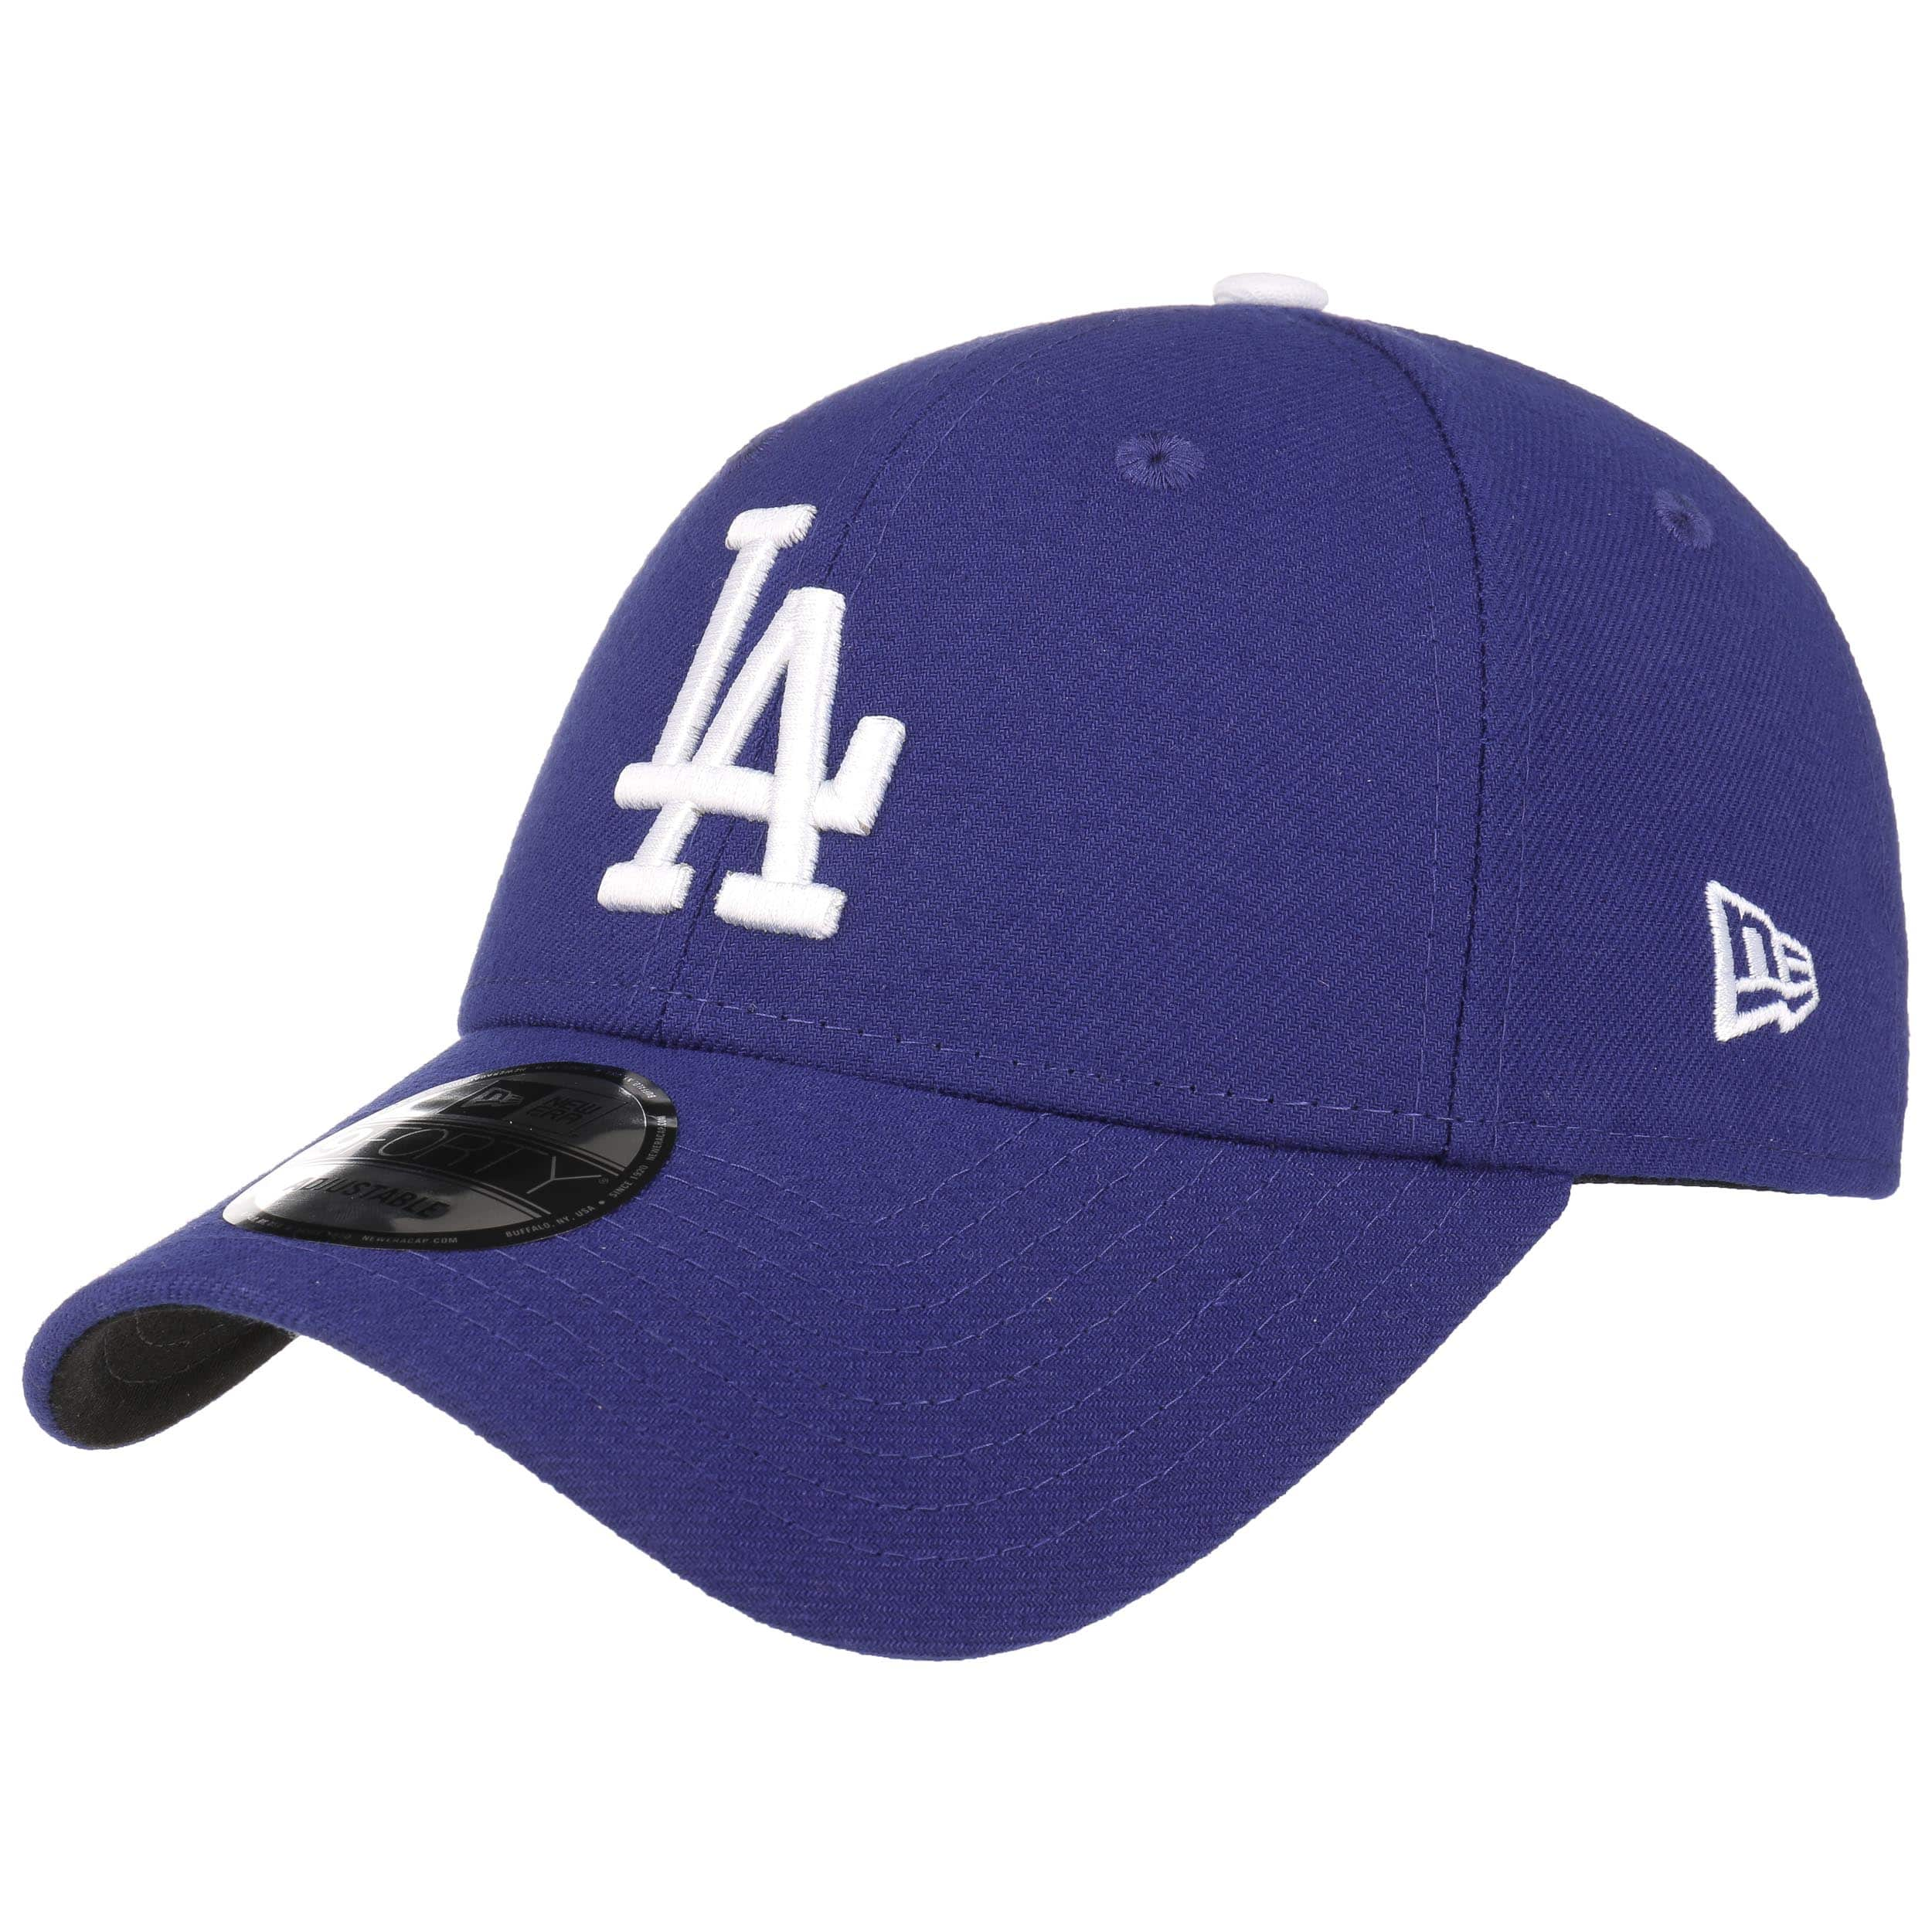 Gorra 9Forty The League Dodgers by New Era - Gorras - sombreroshop.es 3972025f99f